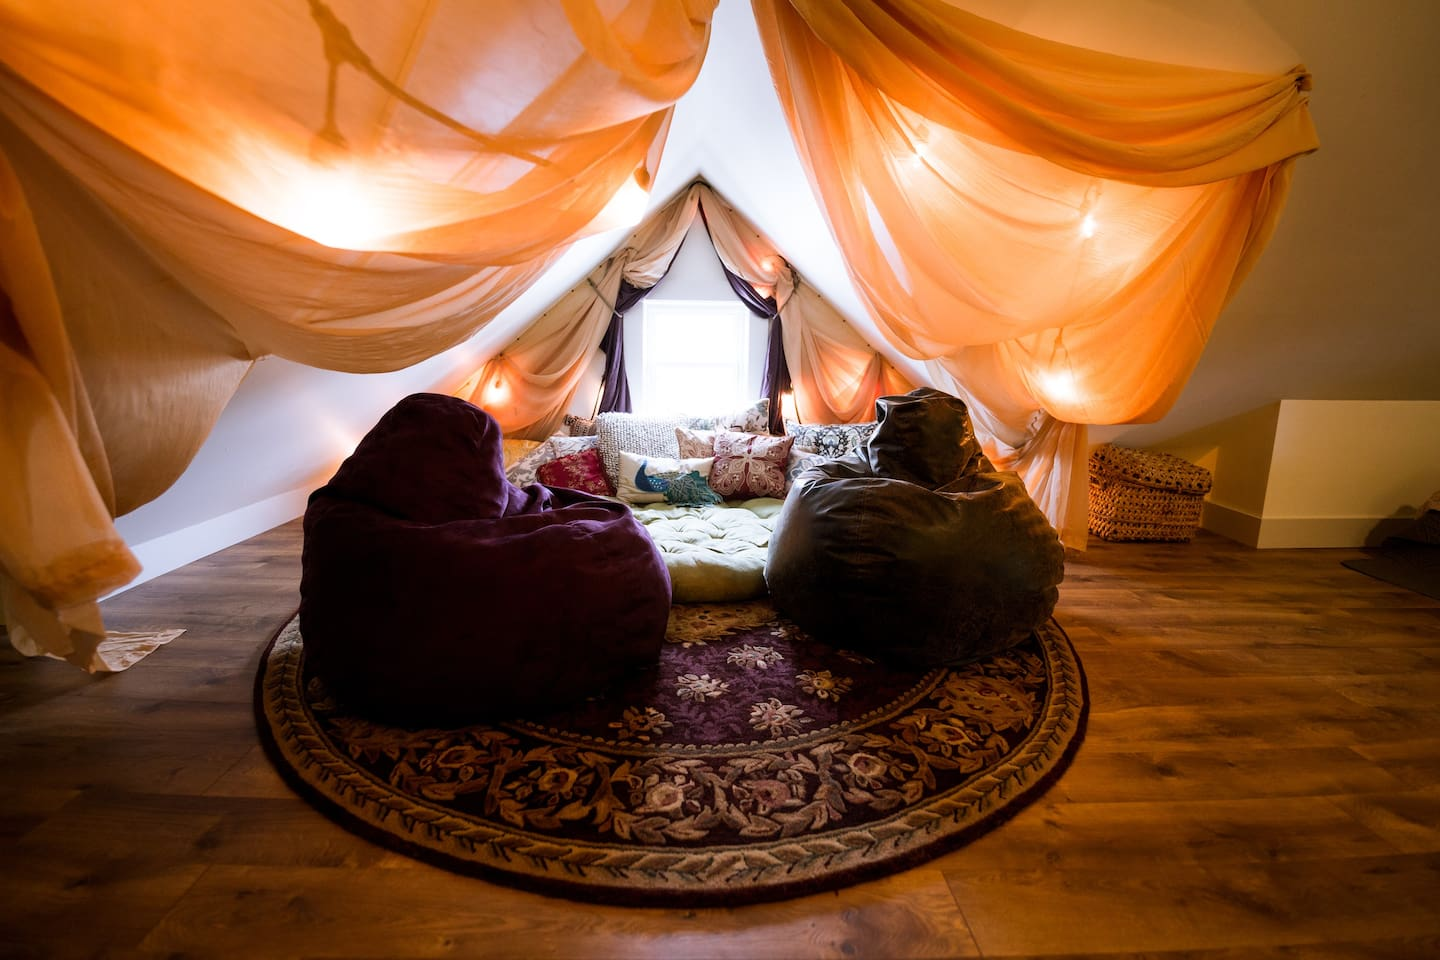 The pillow nook is a cozy and inviting place to relax and while away the hours. Sink in and you will feel right at home!